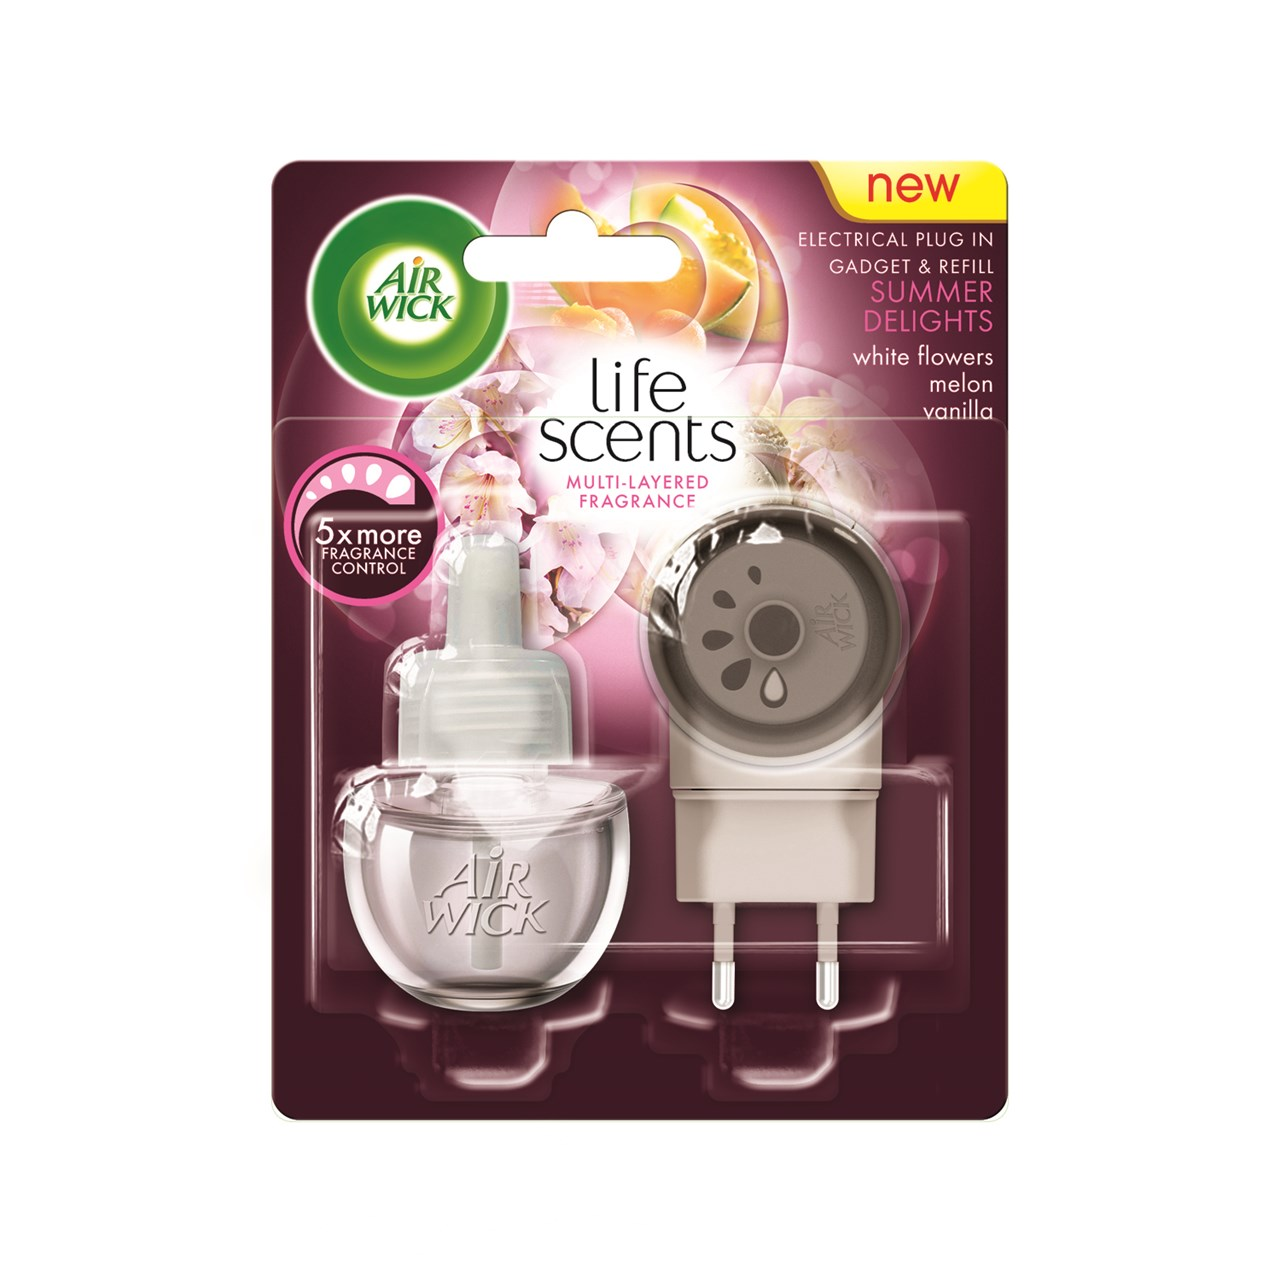 Life Scents Summer Delights Electrical Plug In Gadget & Refill